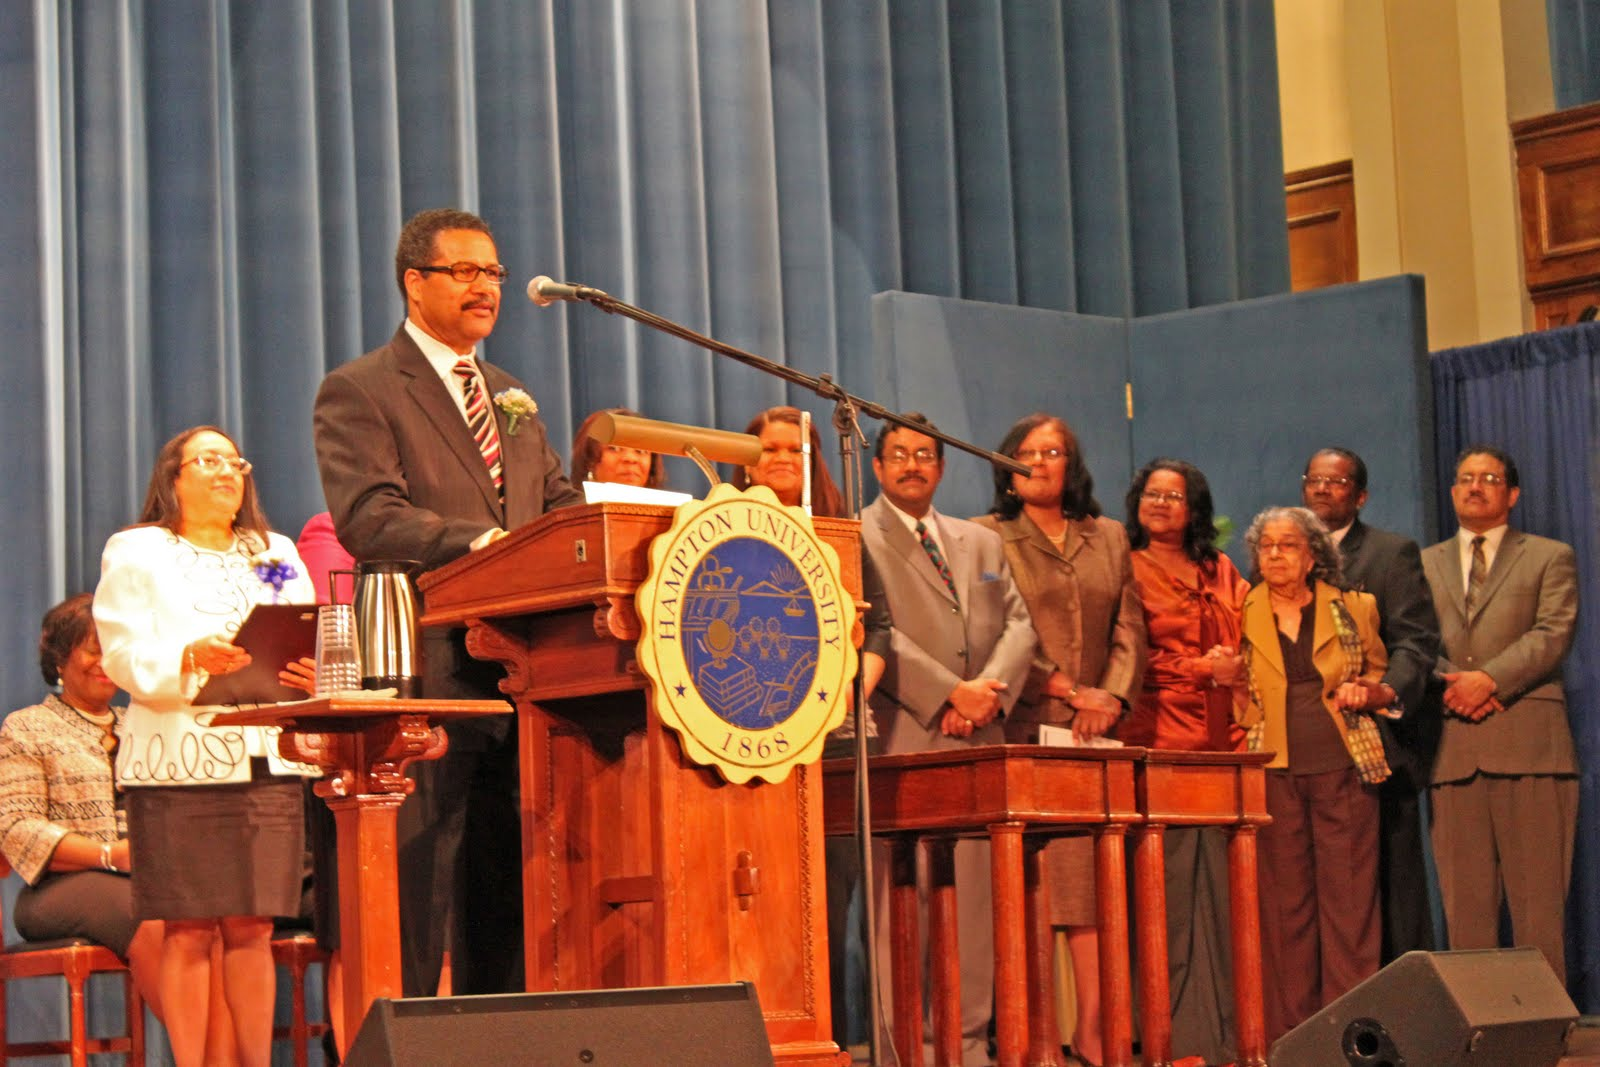 Who are some of the past keynote speakers at the Hampton University minister's conference?